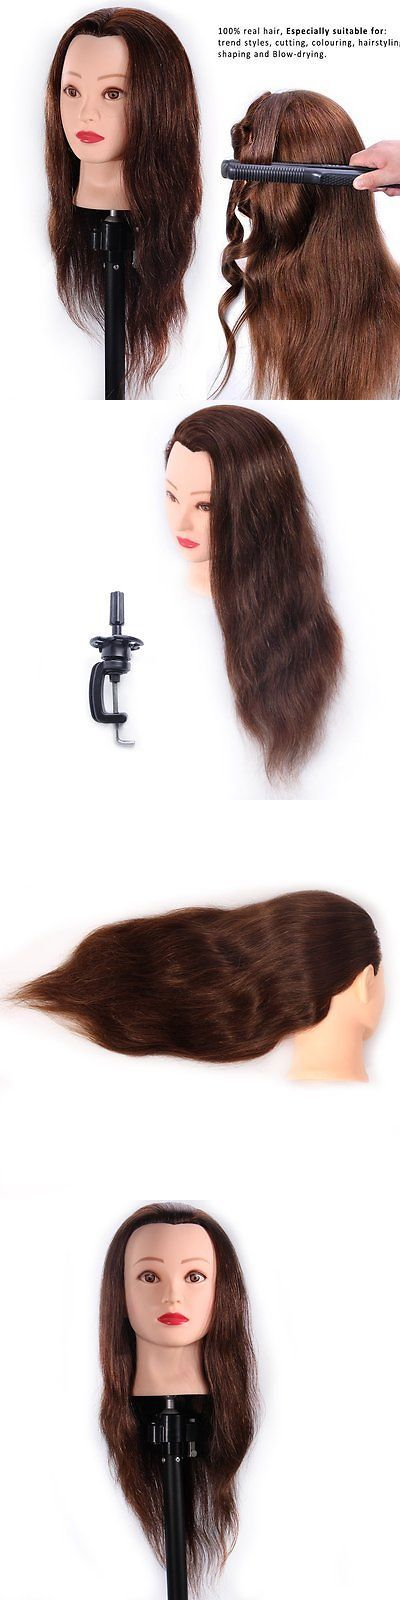 Hair and Makeup Mannequins: 24 Mannequin Head 100% Human Hair Hairdresser Training Head Manikin Cosmetology -> BUY IT NOW ONLY: $60.49 on eBay!